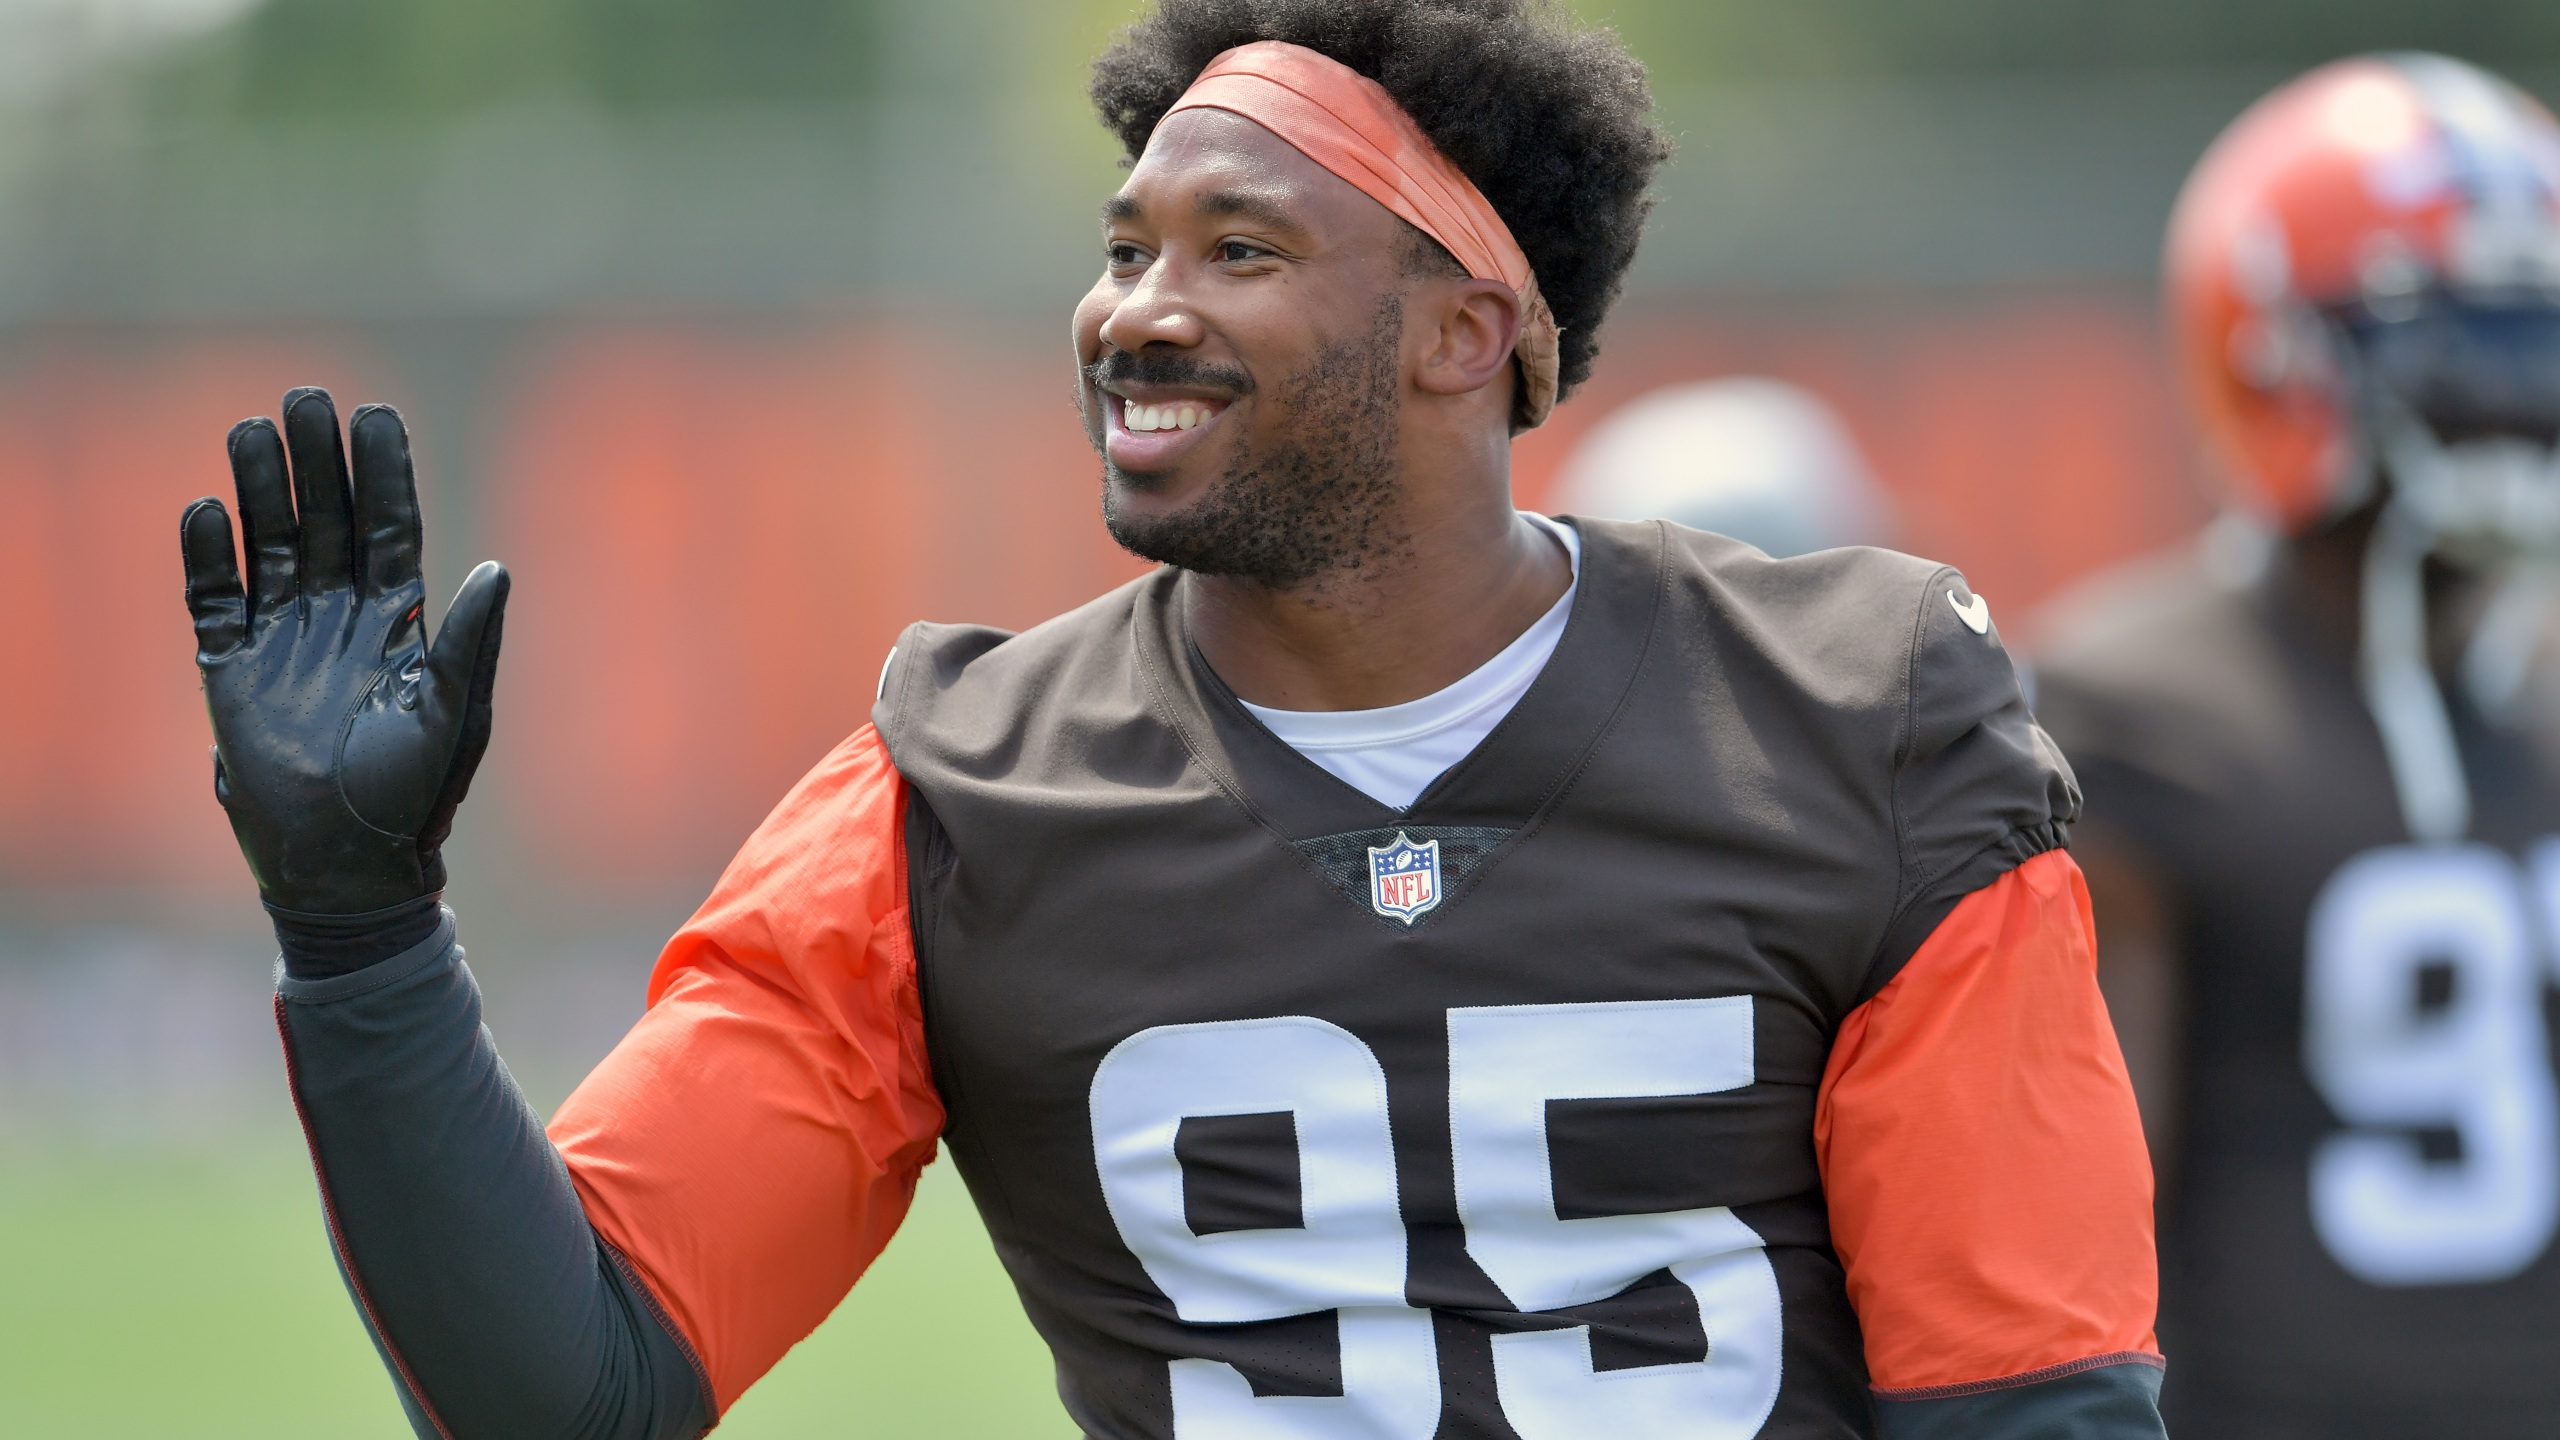 BEREA, OHIO - JULY 30: Defensive end Myles Garrett #95 of the Cleveland Browns waves to the fans during Cleveland Browns Training Camp on July 30, 2021 in Berea, Ohio. (Photo by Jason Miller/Getty Images)